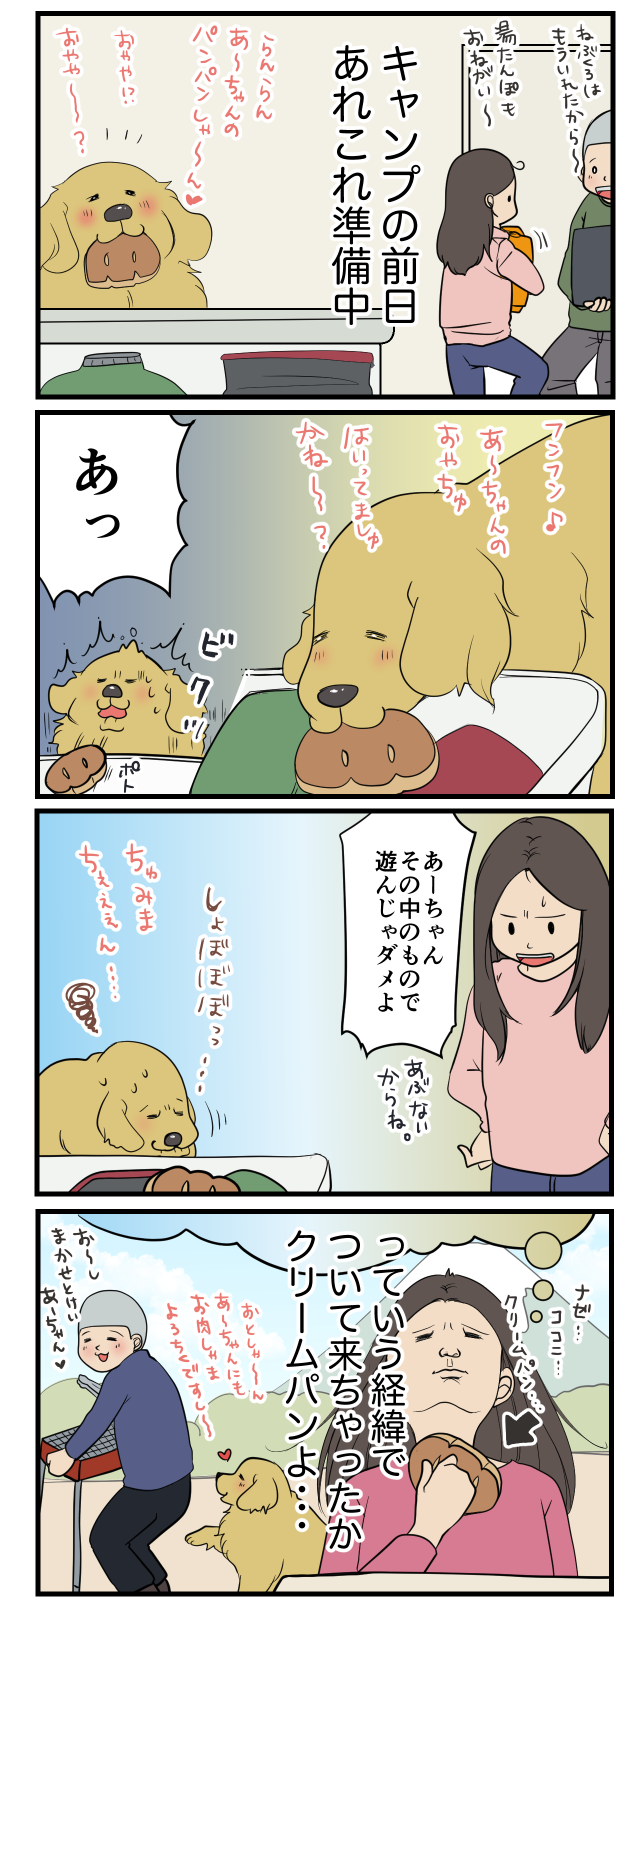 20180328000209ff3.png